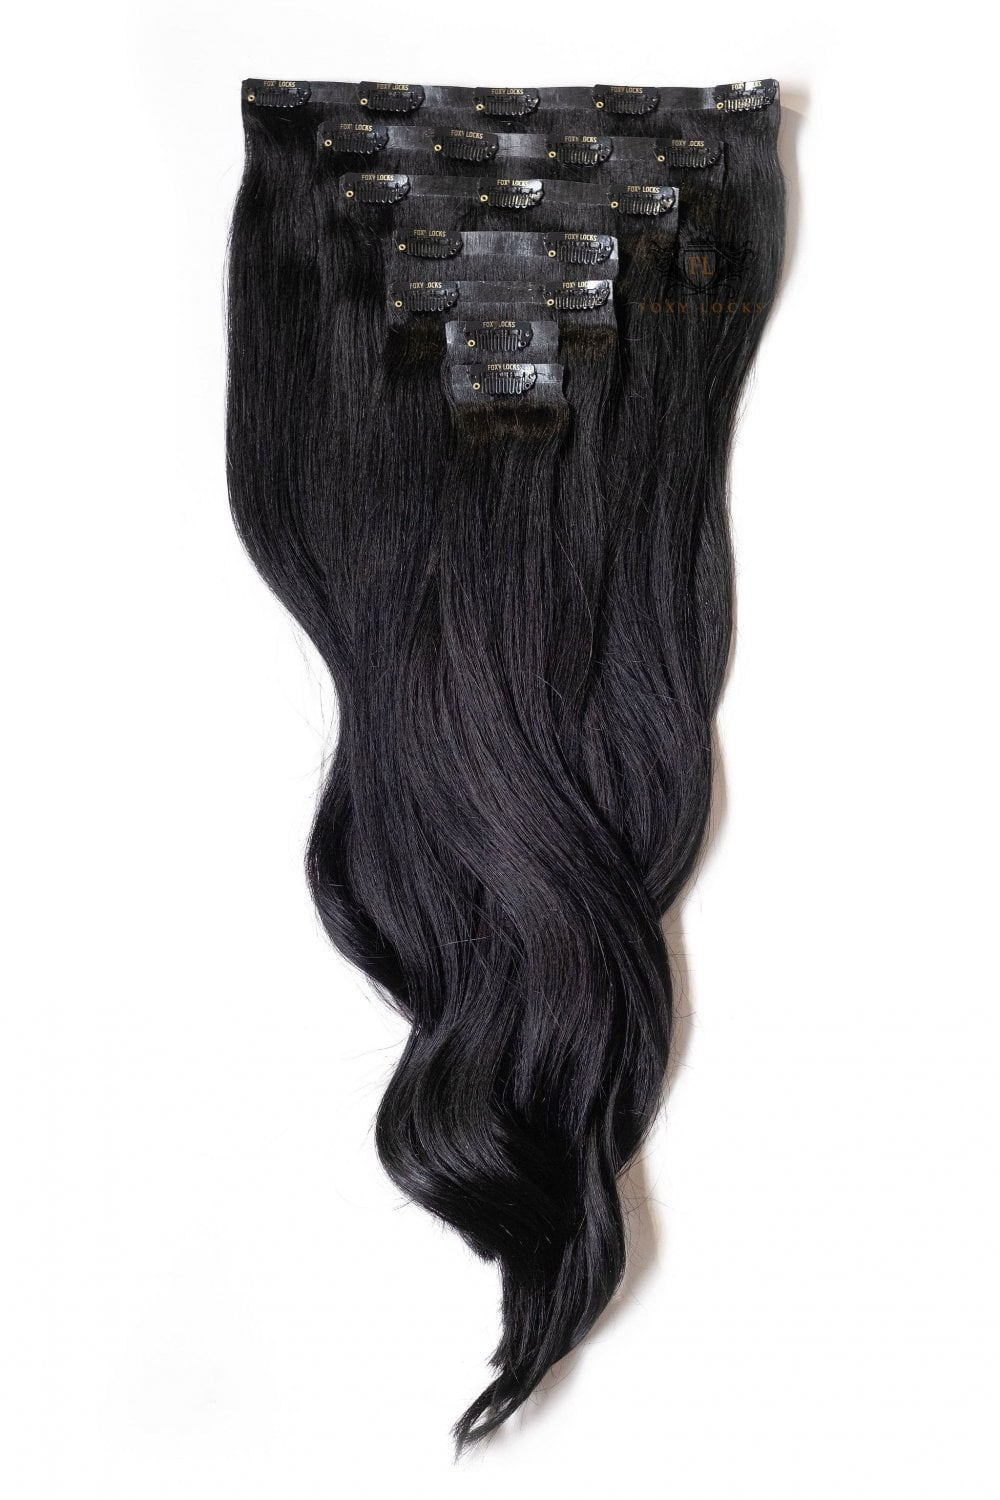 Jet Black Seamless Deluxe 20 Clip In Human Hair Extensions 165g